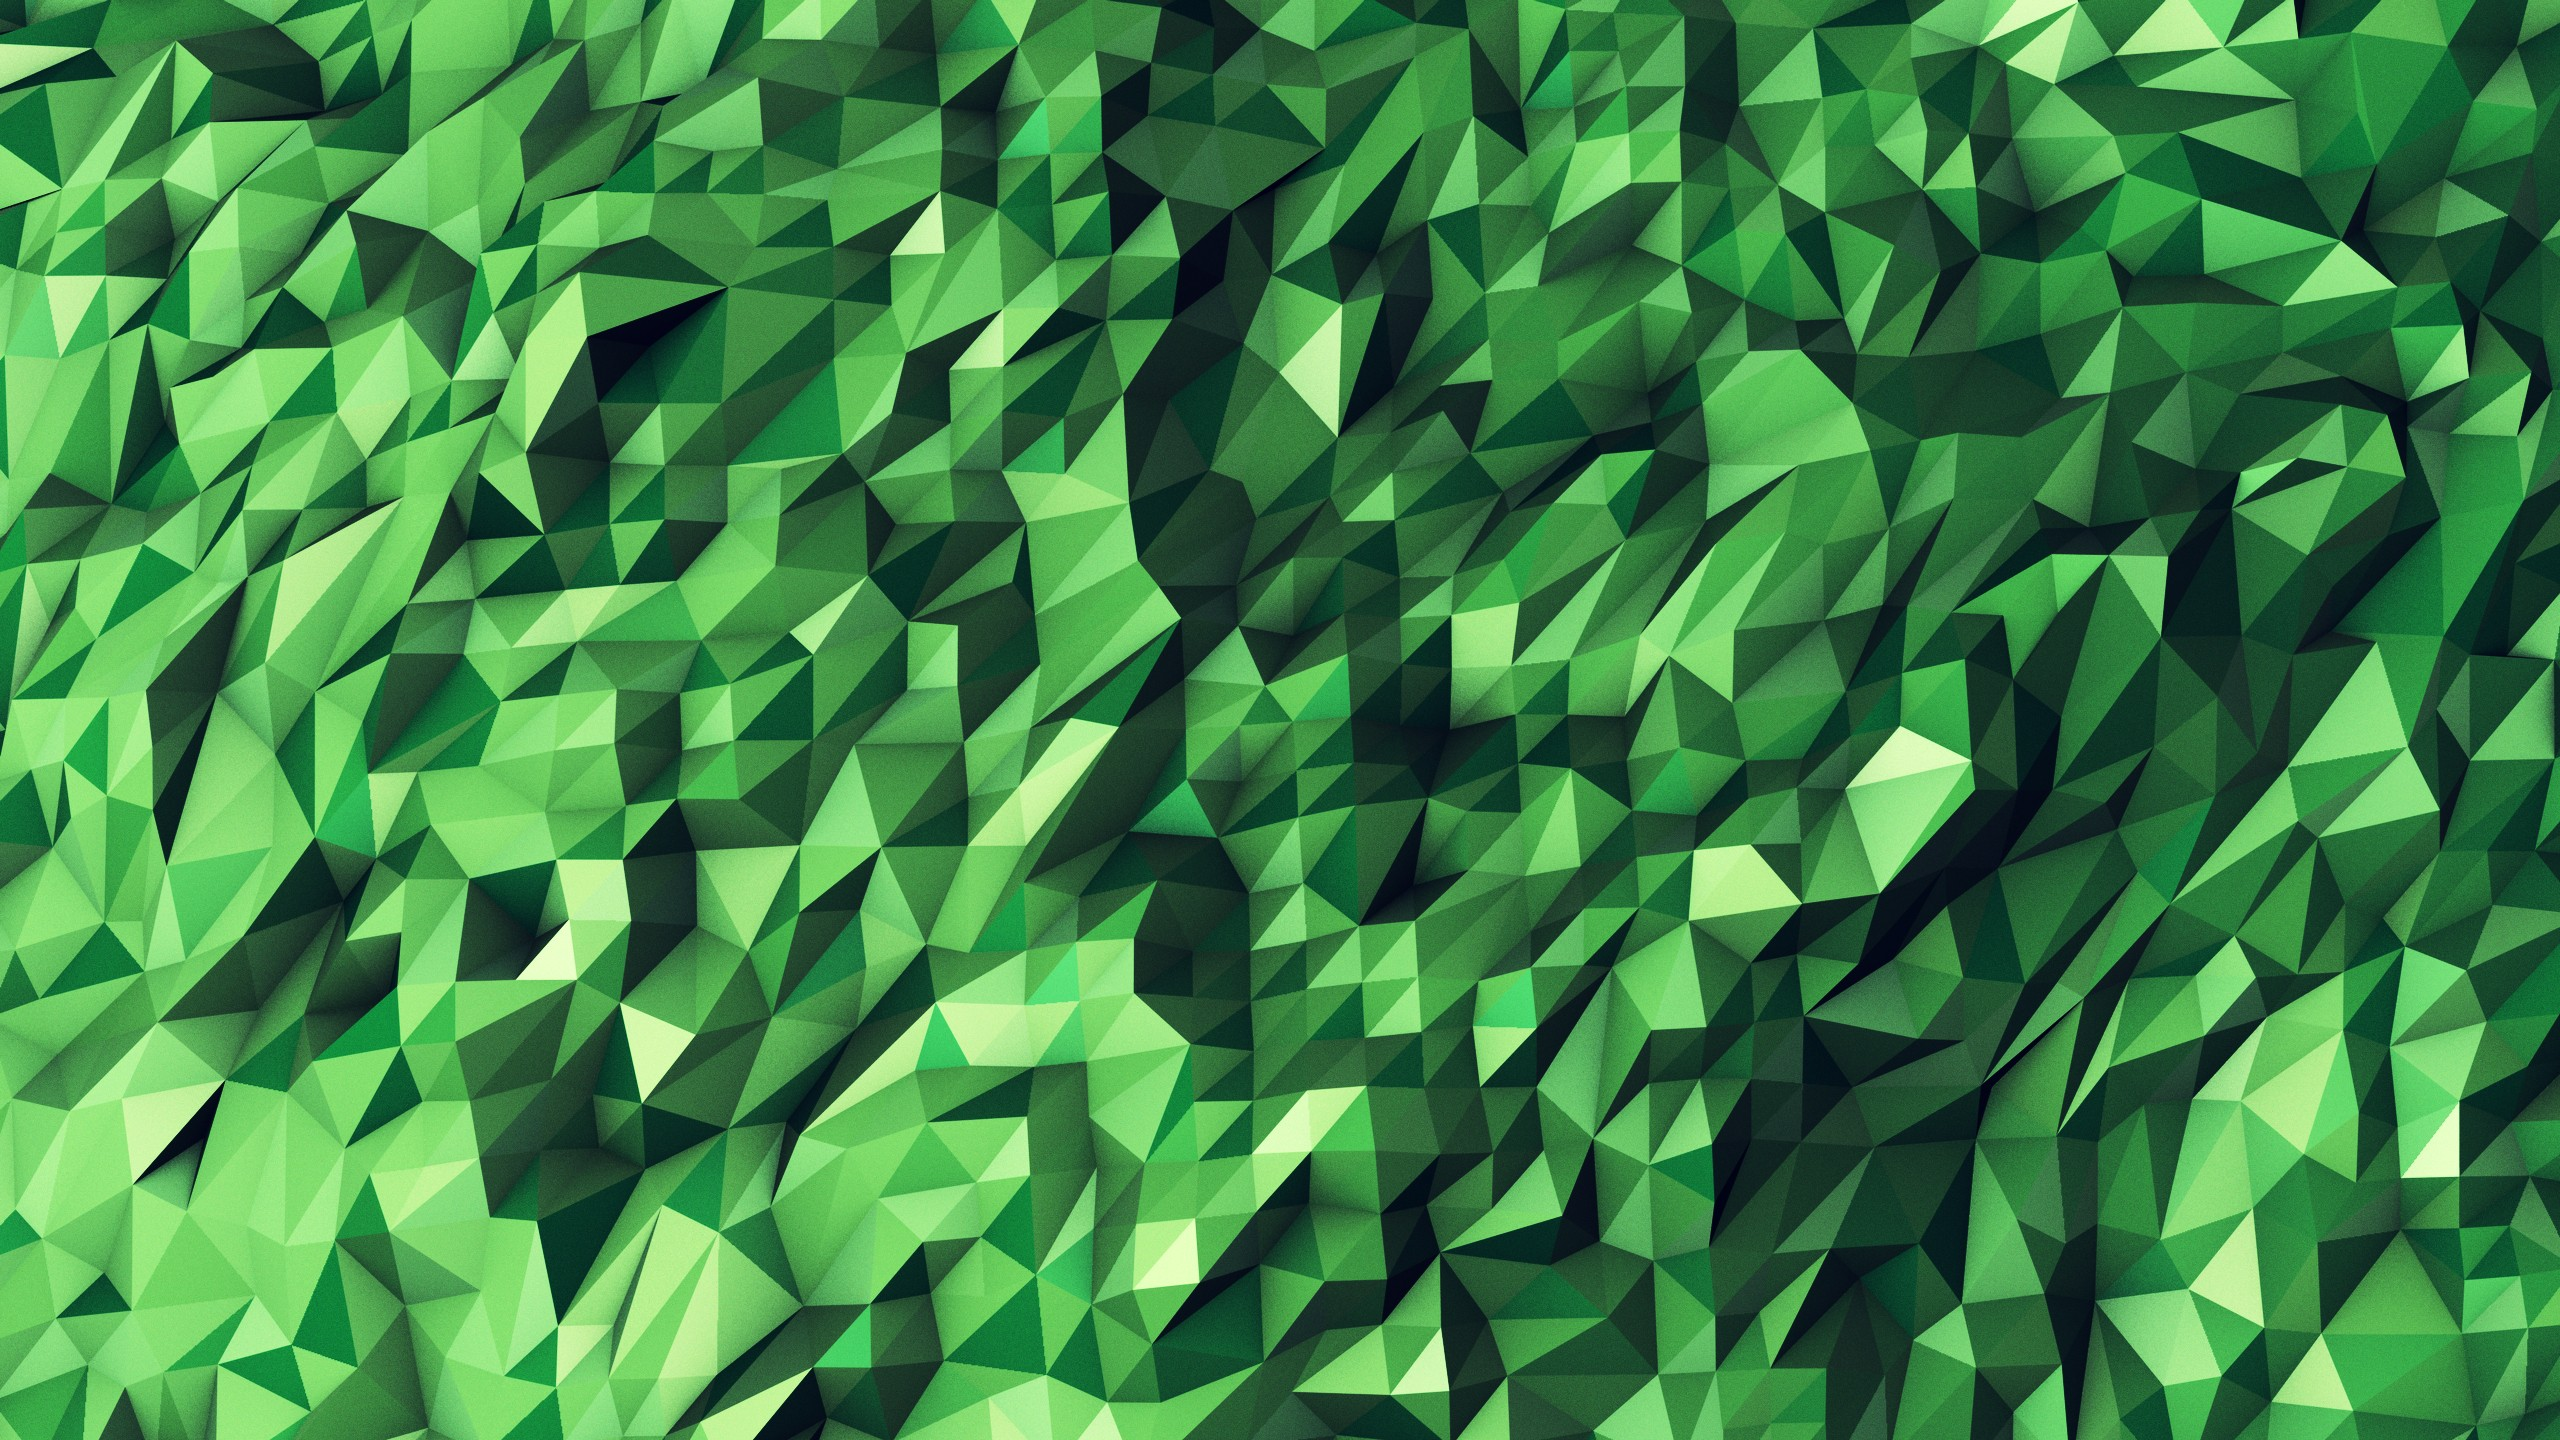 14/05/2015 Isometric | Resolution: 2560x1440, Hyman Reaves